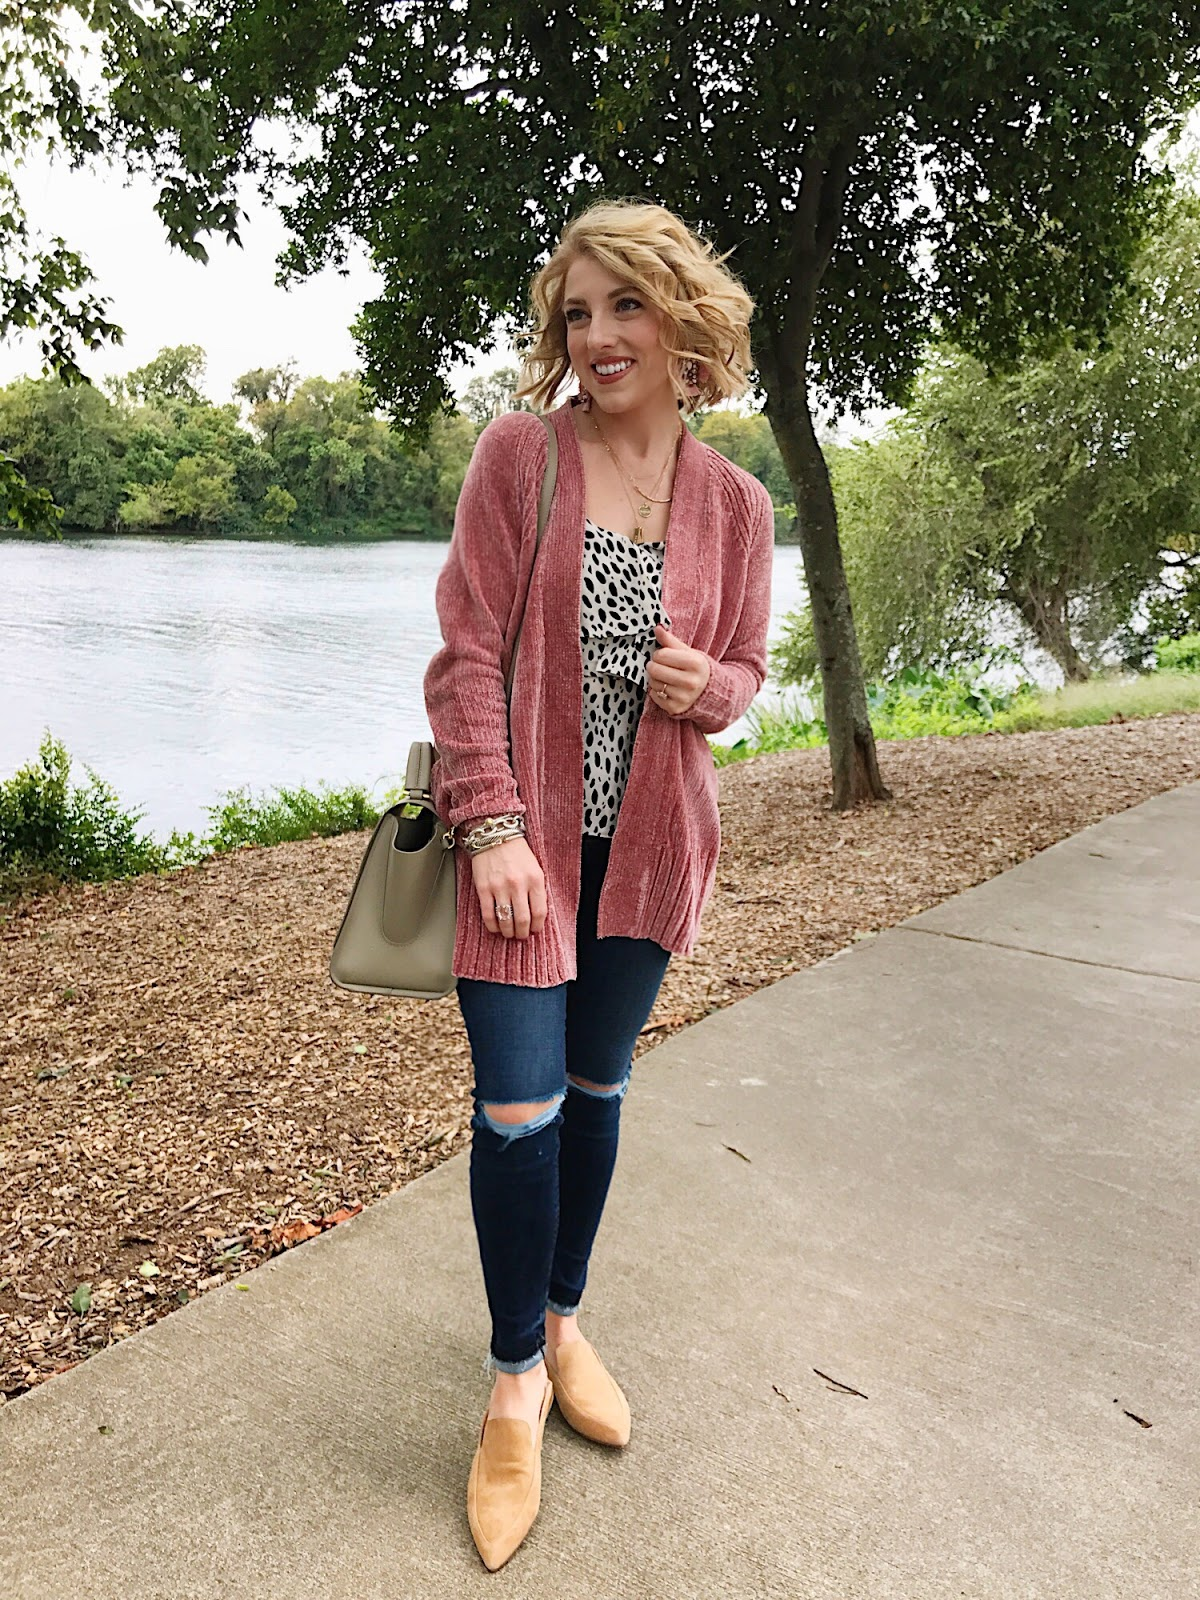 Fall Style - Something Delightful